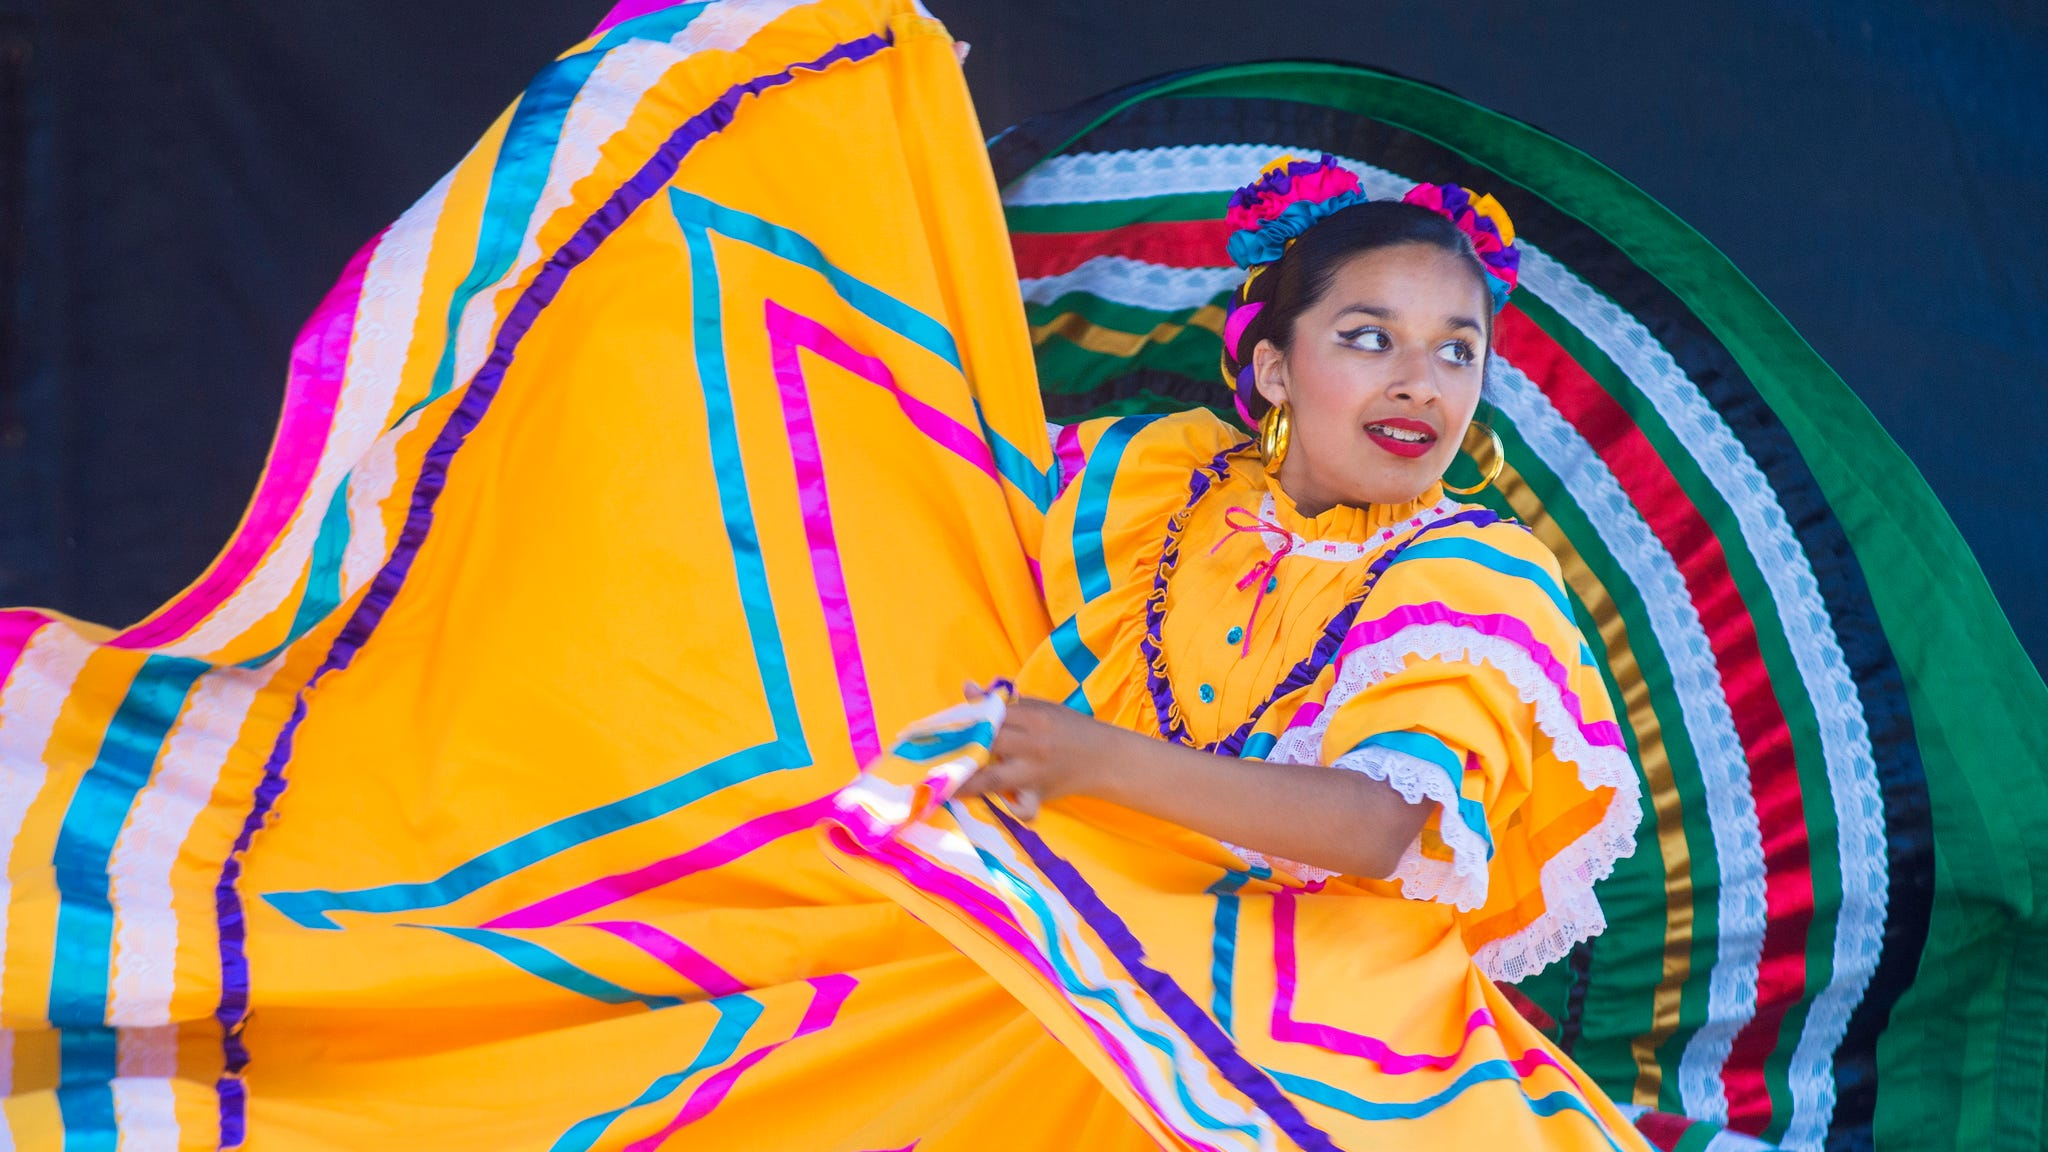 Cities across the country will take to the streets on Cinco de Mayo to celebrate, and VacationRenter and Dreamstime have put together a roundup of the best festivals to attend. In San Diego, the party will include live entertainment, an auto showcase and food and drink specials at venues around town.